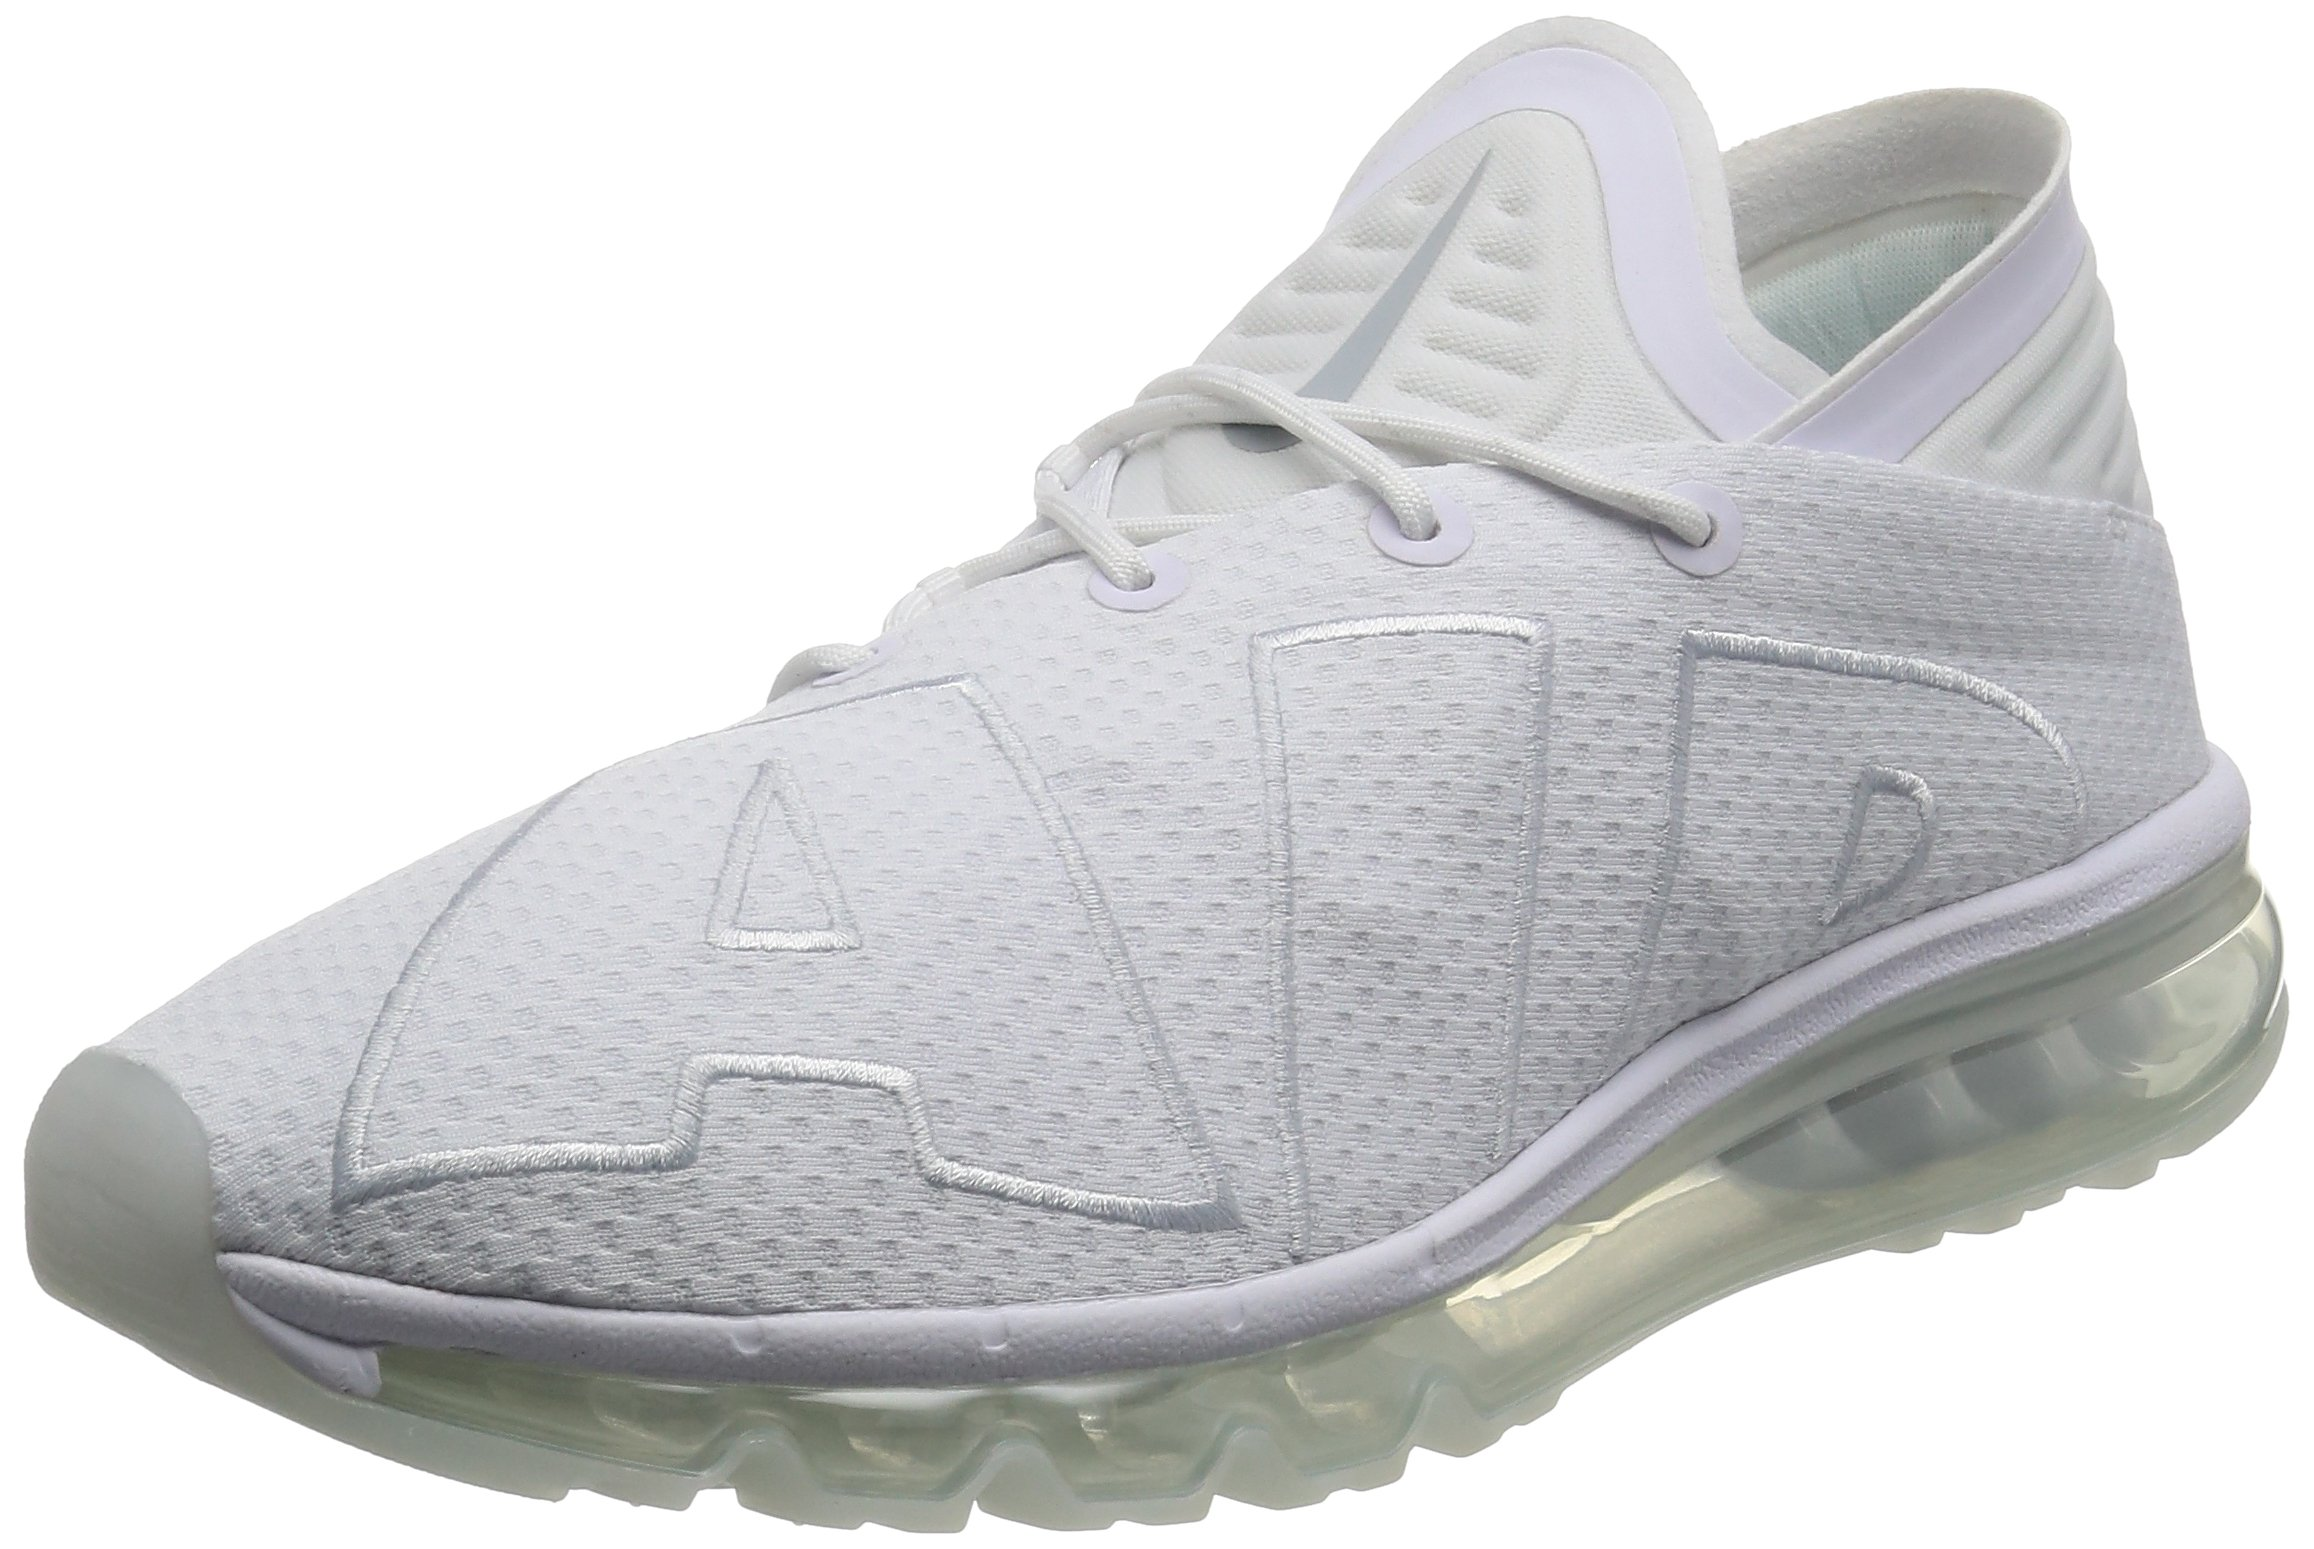 Nike Air Max Flair Men's Sneaker (8.5 D(M) US)